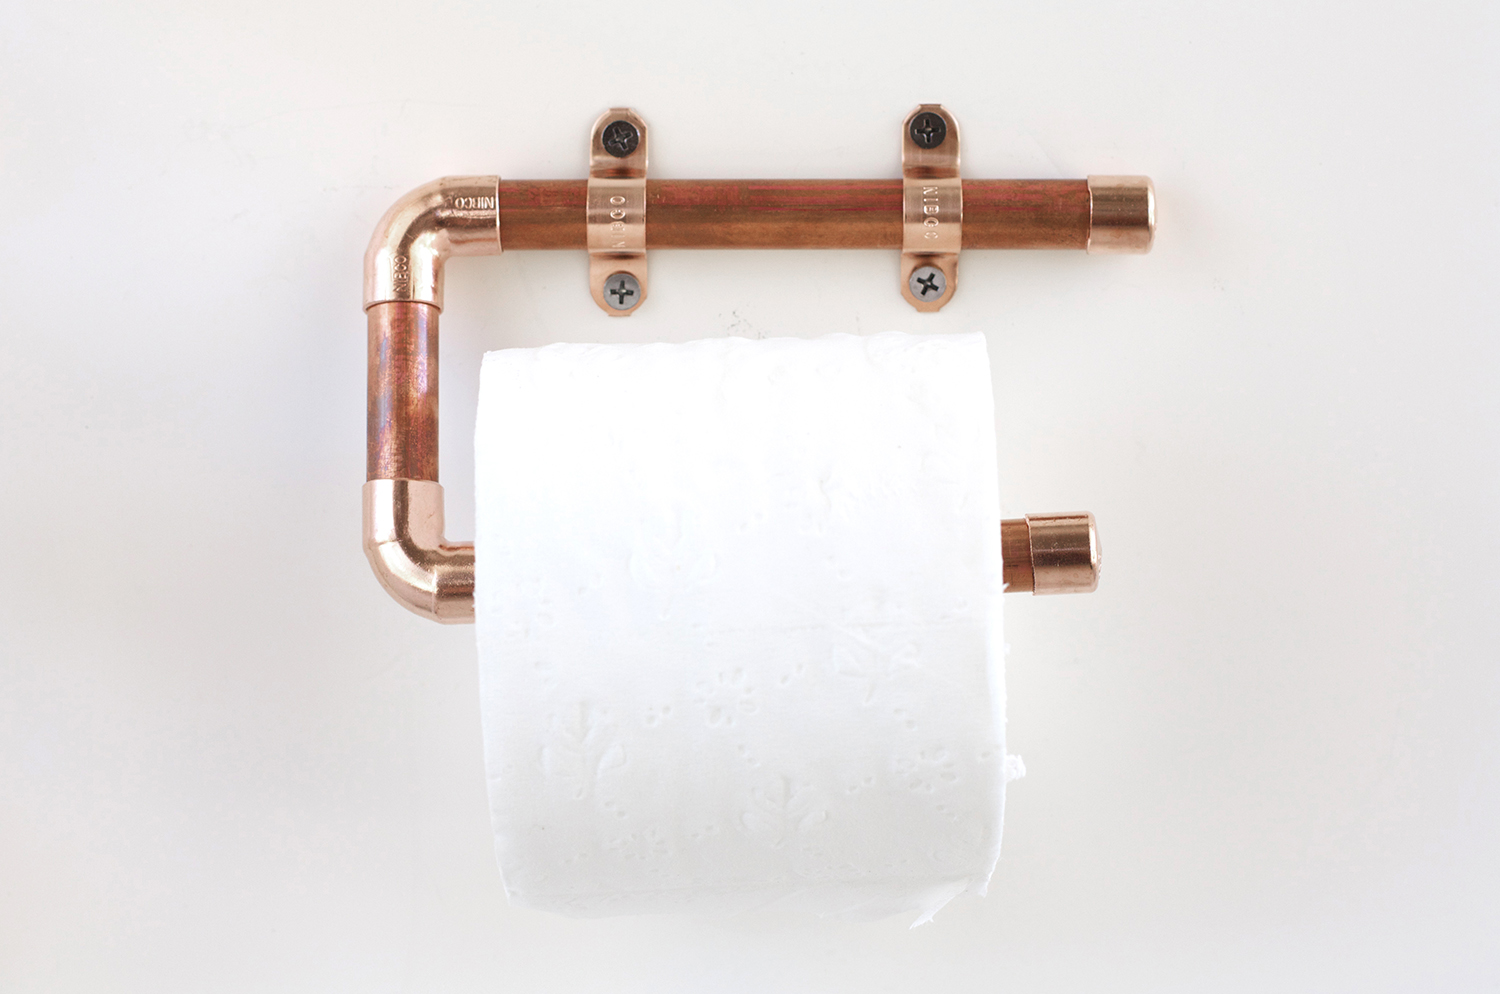 Toilet Paper Holder : Copper pipe toilet paper holder u2014 kristi murphy diy blog